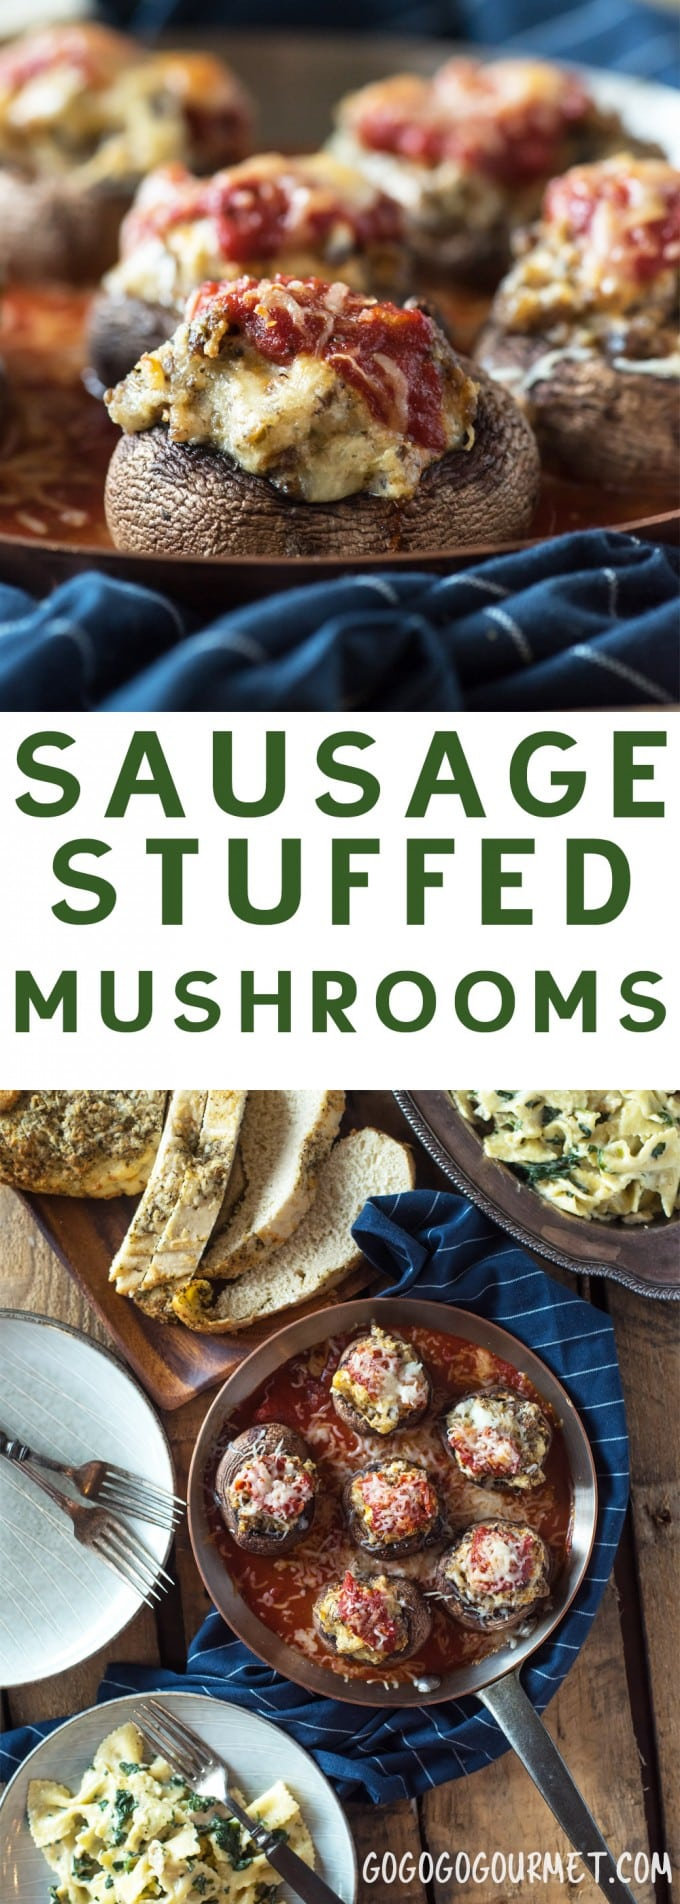 These Sausage Stuffed Mushrooms are practically